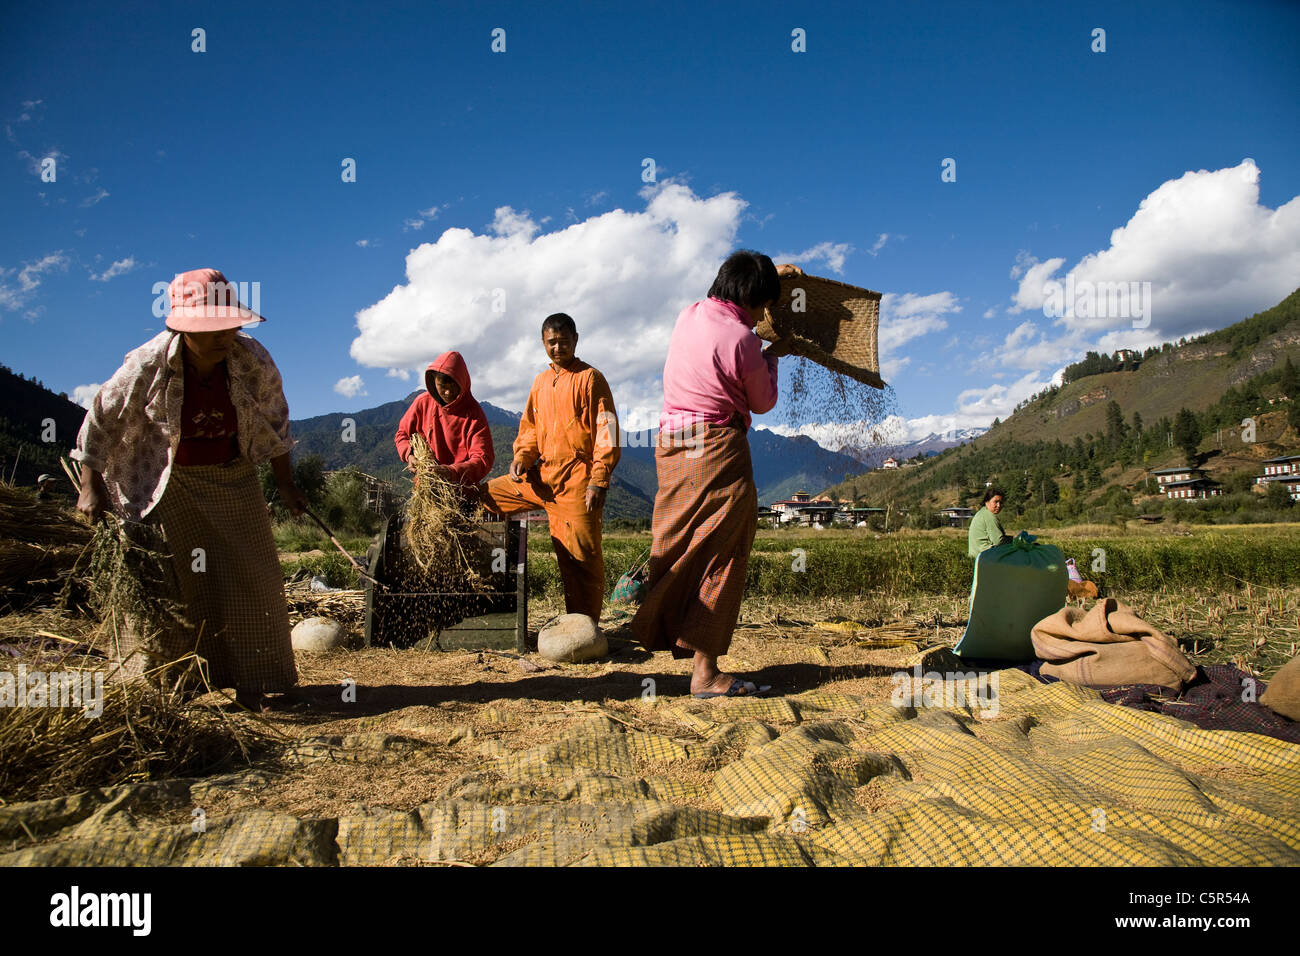 Local peasants working in fields on a pleasant day in Paro, Bhutan. - Stock Image